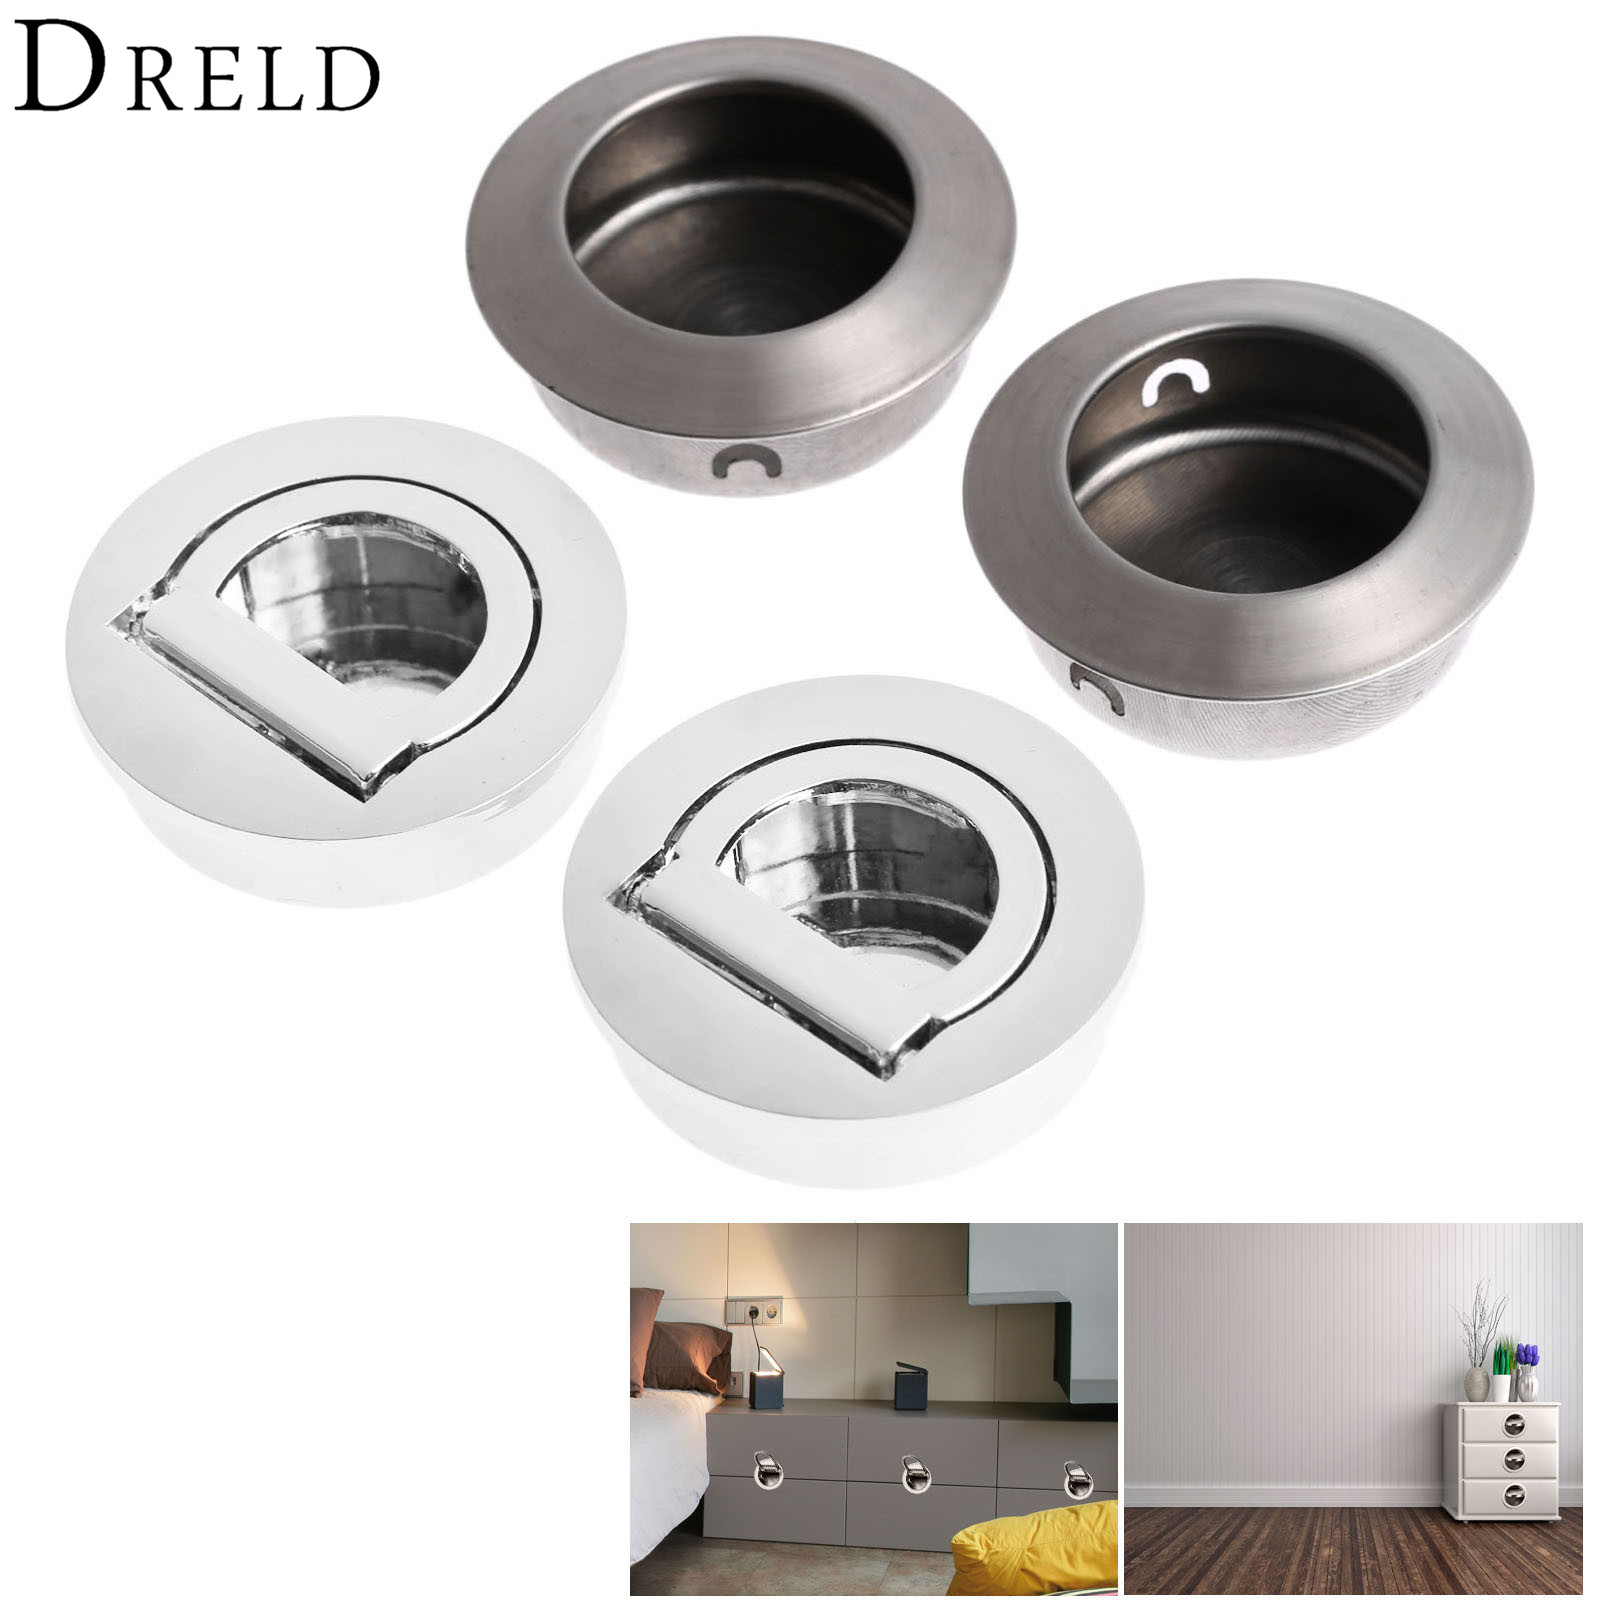 DRELD 2Pcs Furniture Cabinet Hidden Handles Stainless Steel Invisible Door Handle Circle Drawer Wardrobe Knob Furniture Hardware